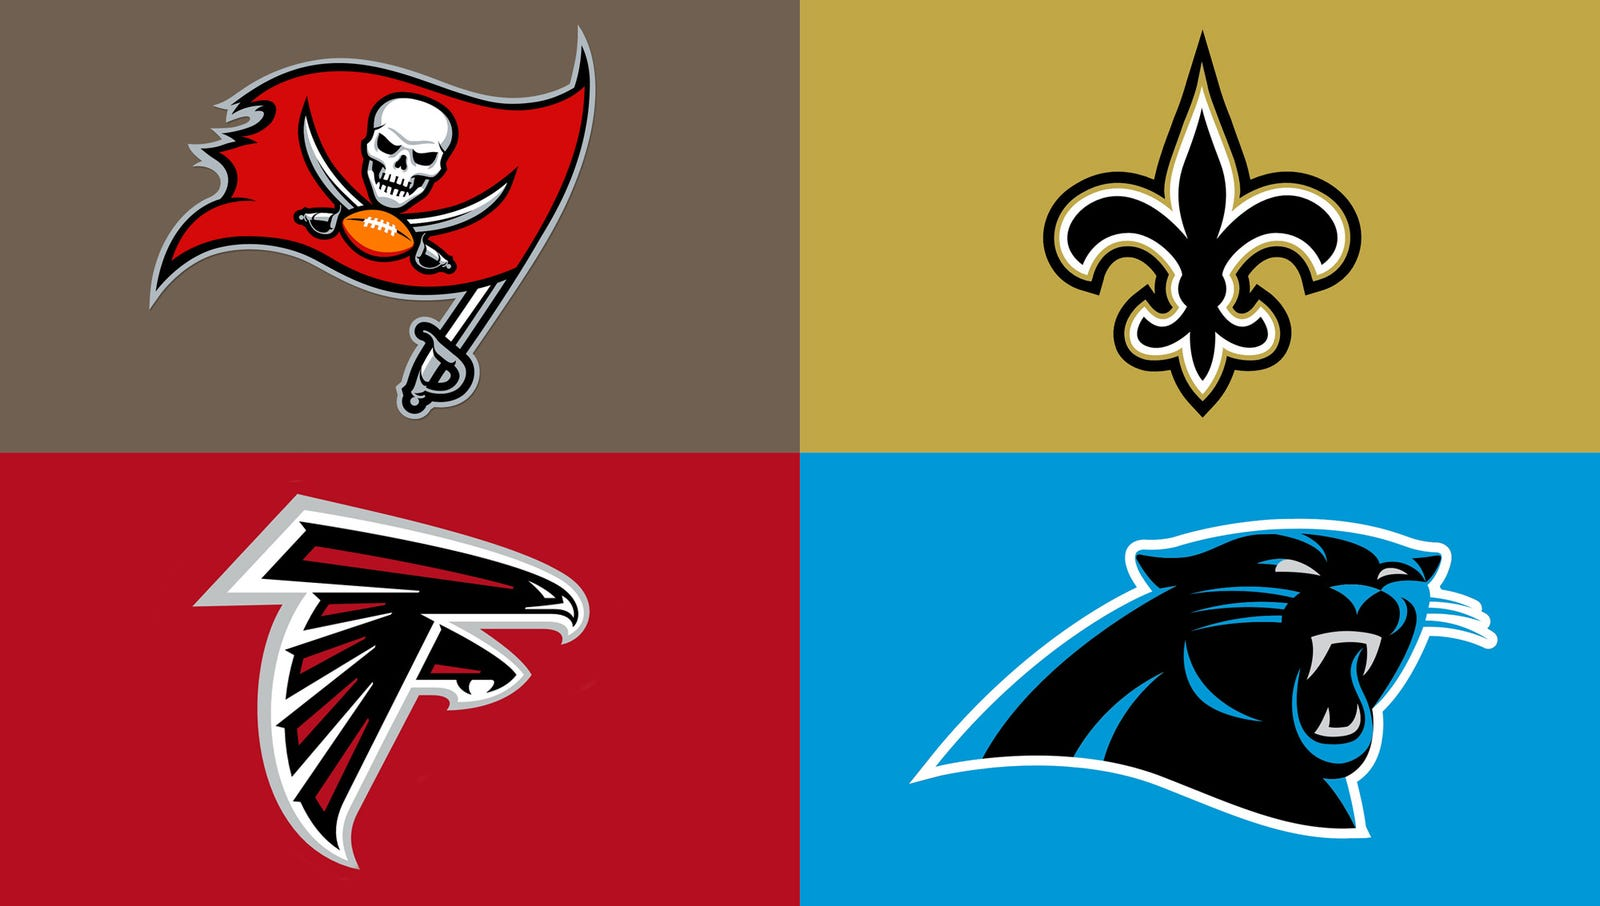 With the 2014 NFL season kicking off this week, Onion Sports has in-depth analysis on each team in the NFC South.